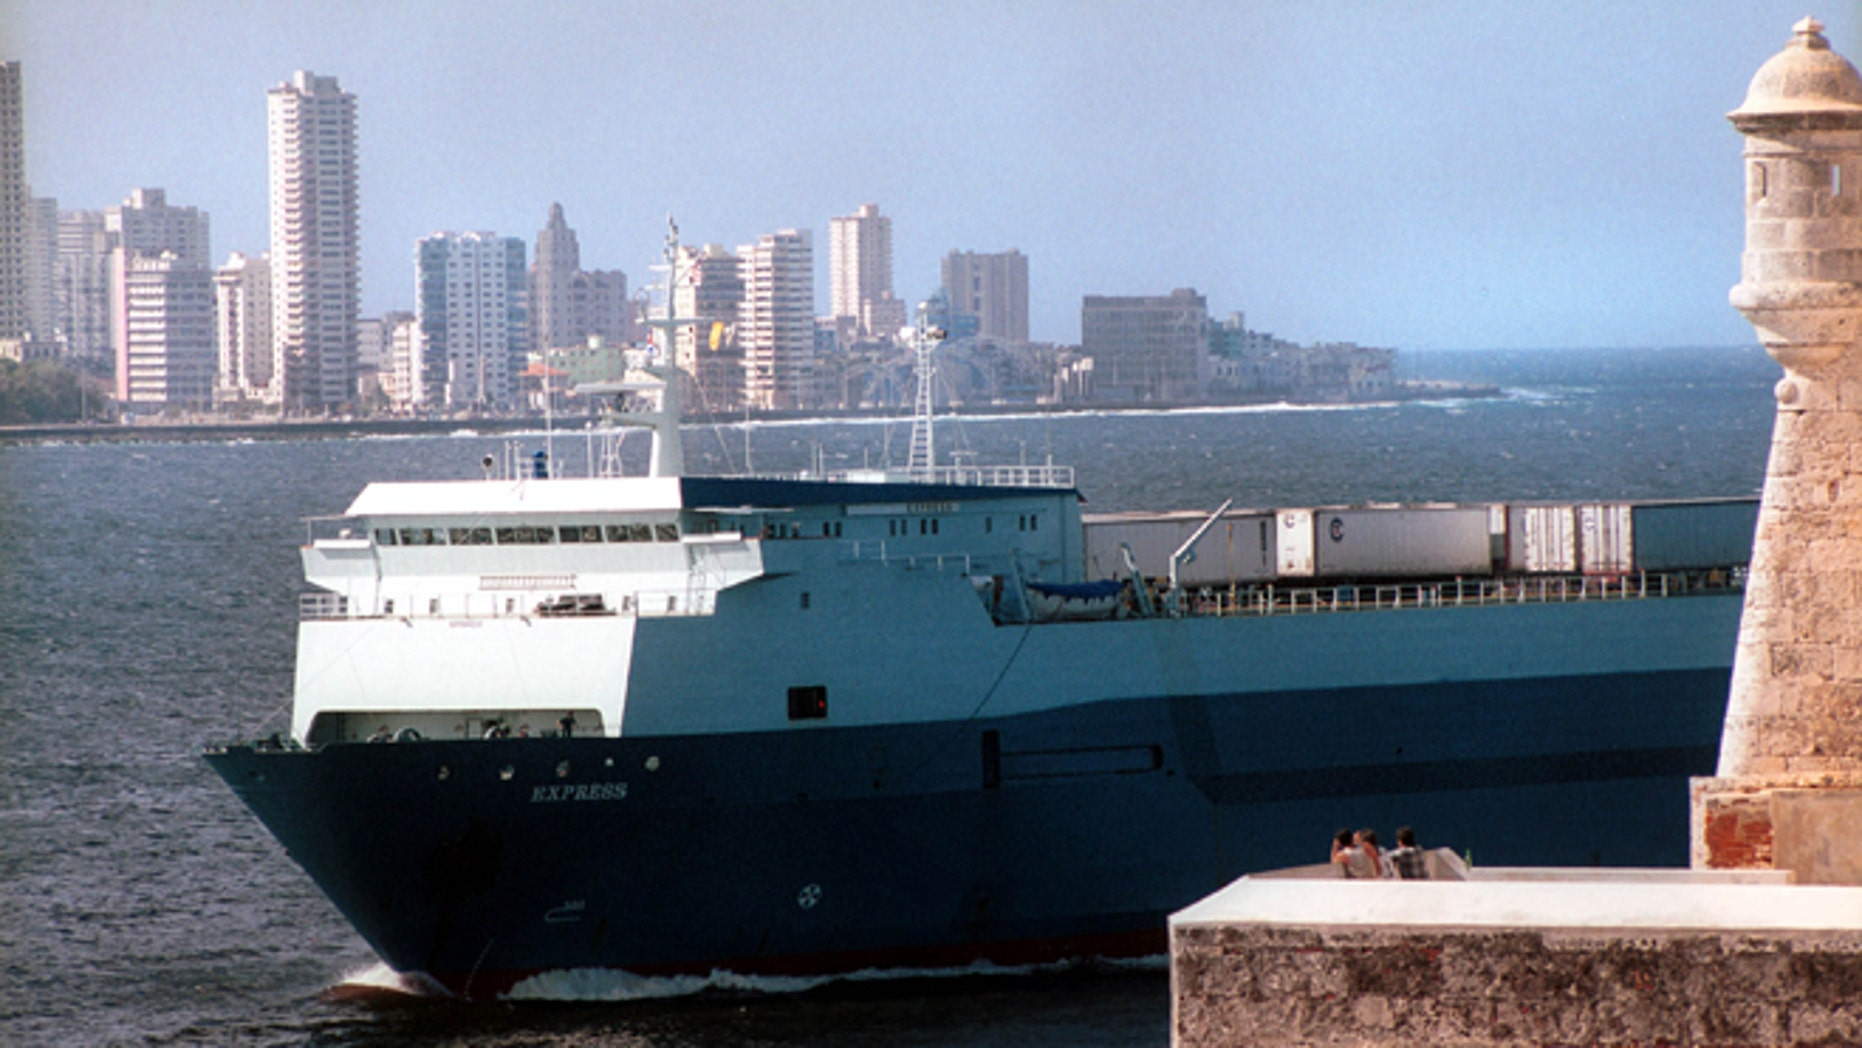 The Express Monrovia arrives December 16, 2001, at the Port of Havana, Cuba. The vessel was one of the first commercial shipments to arrive in Havana from the U.S.A. after 1963. It was carrying a shipment of corn. (Photo by Jorge Rey/Getty Images)